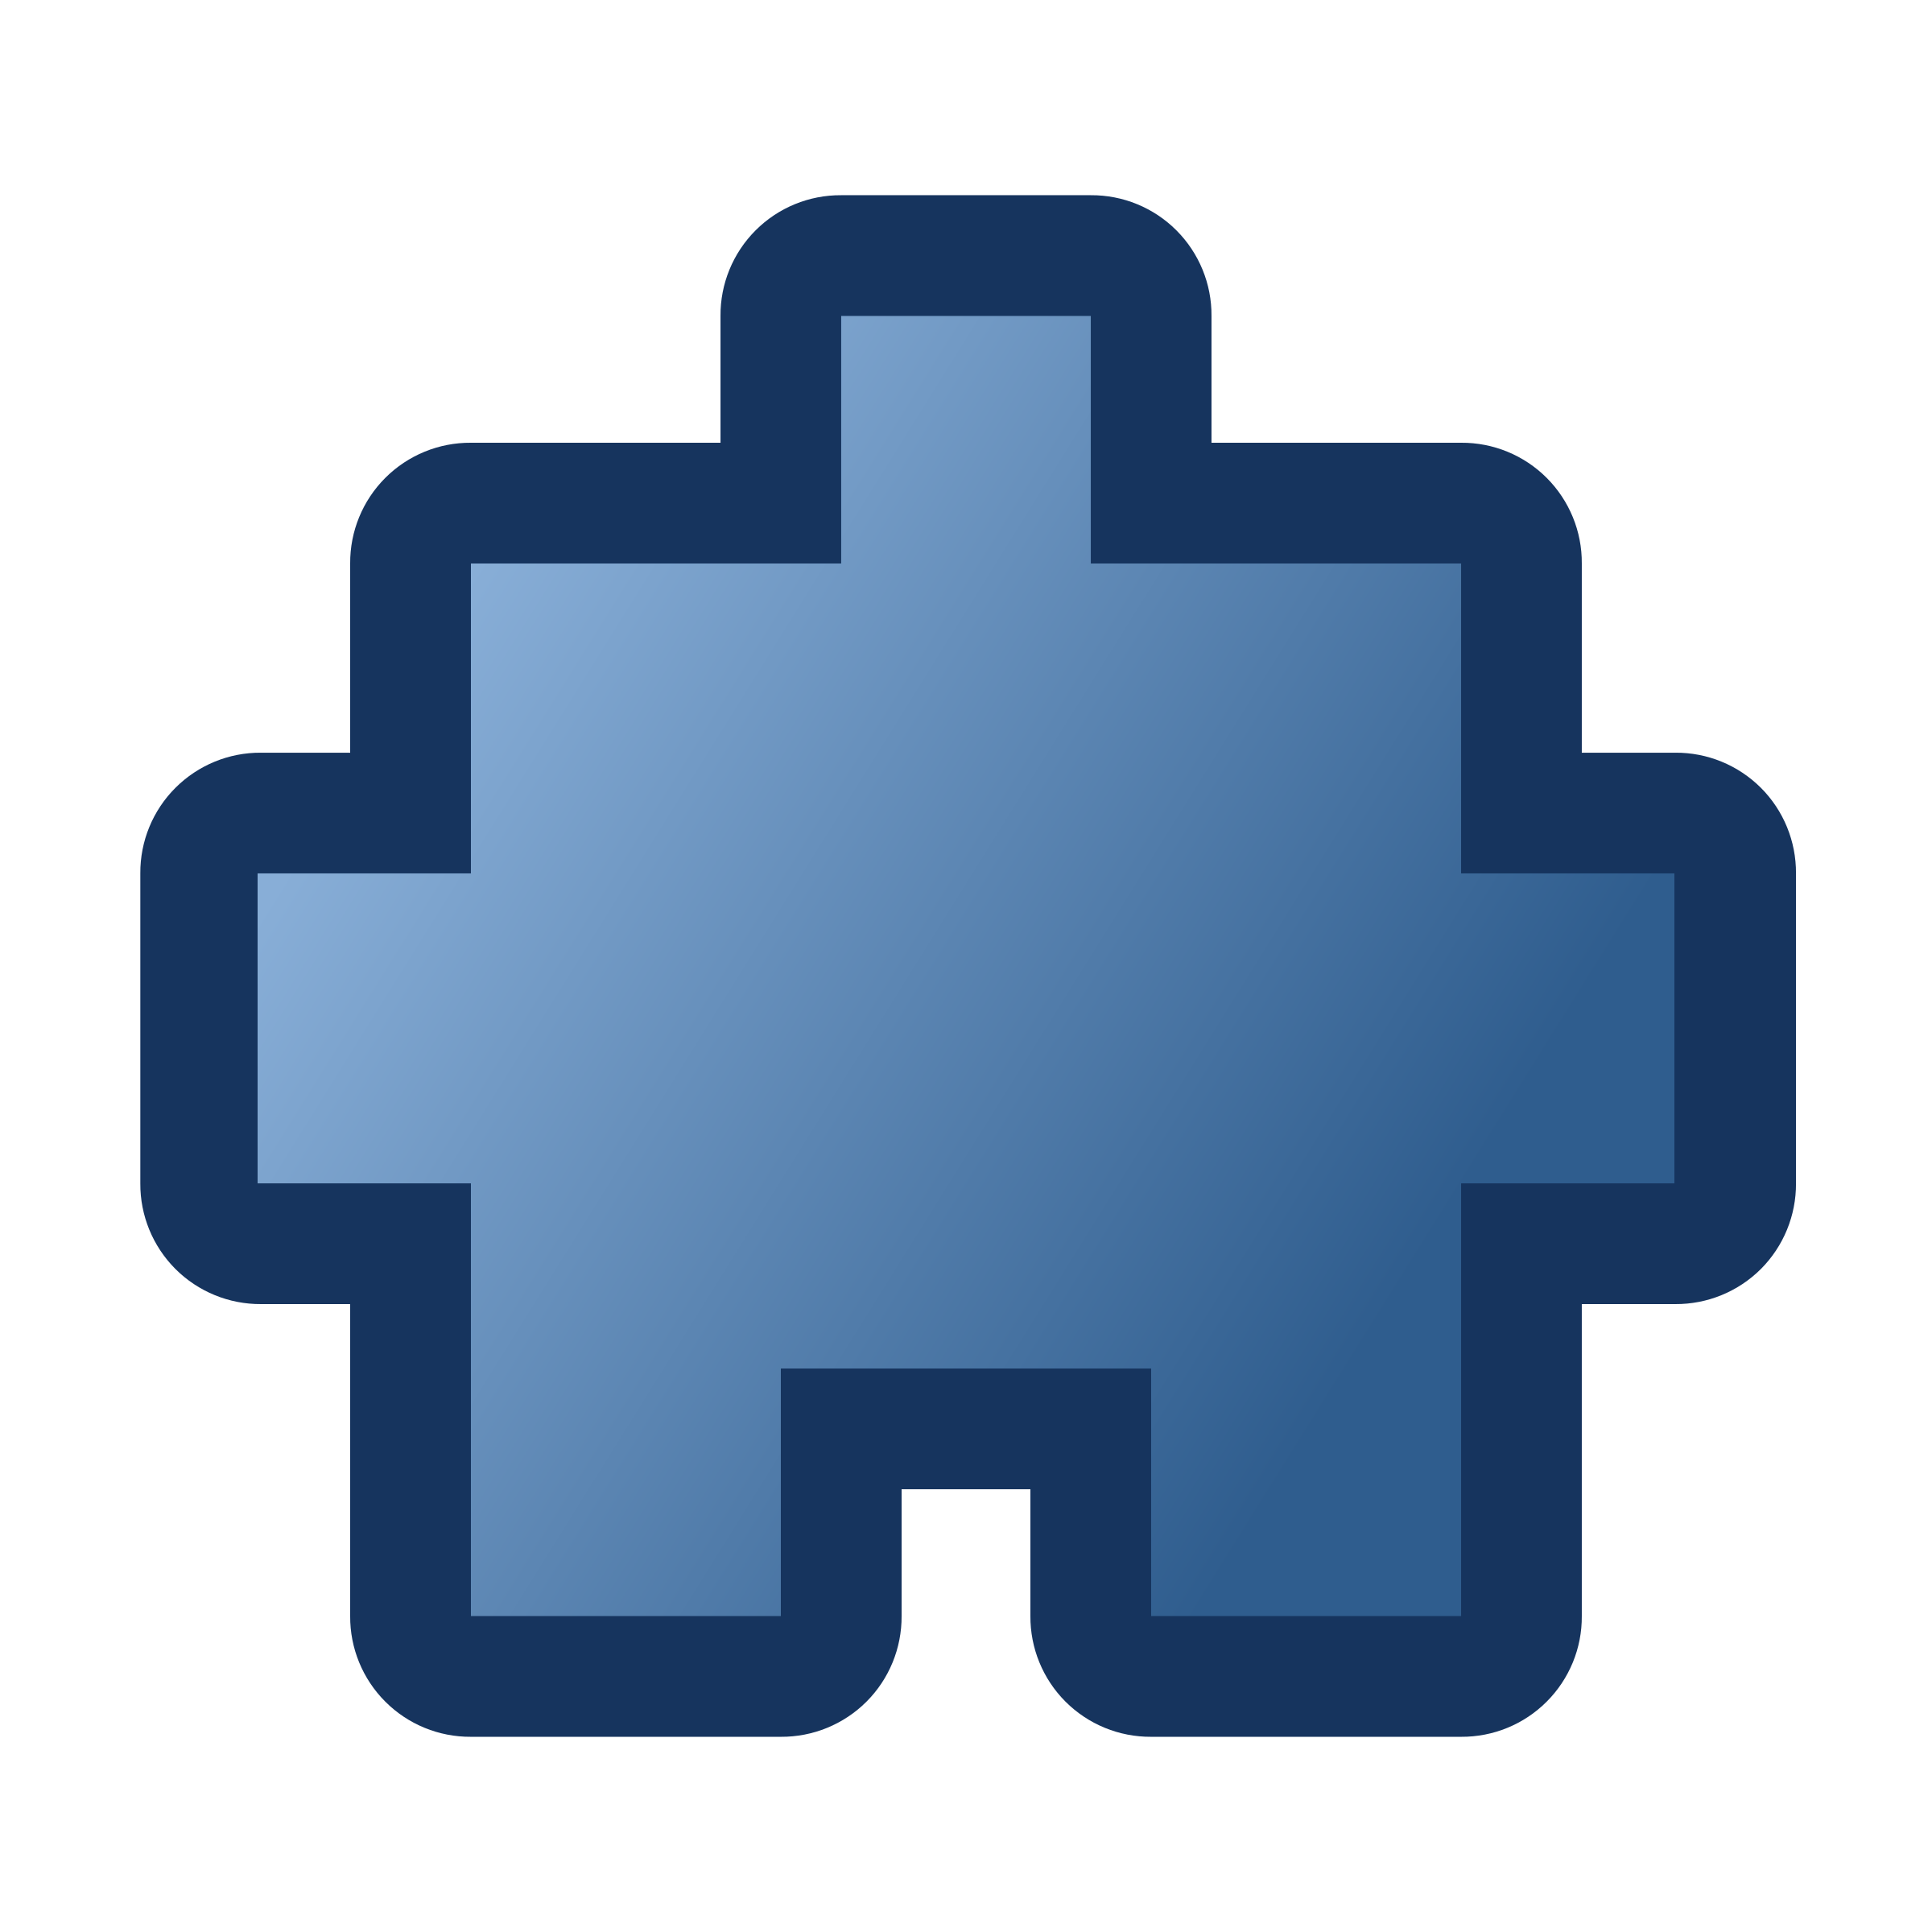 icon-puzzle2-blue by jean_victor_balin